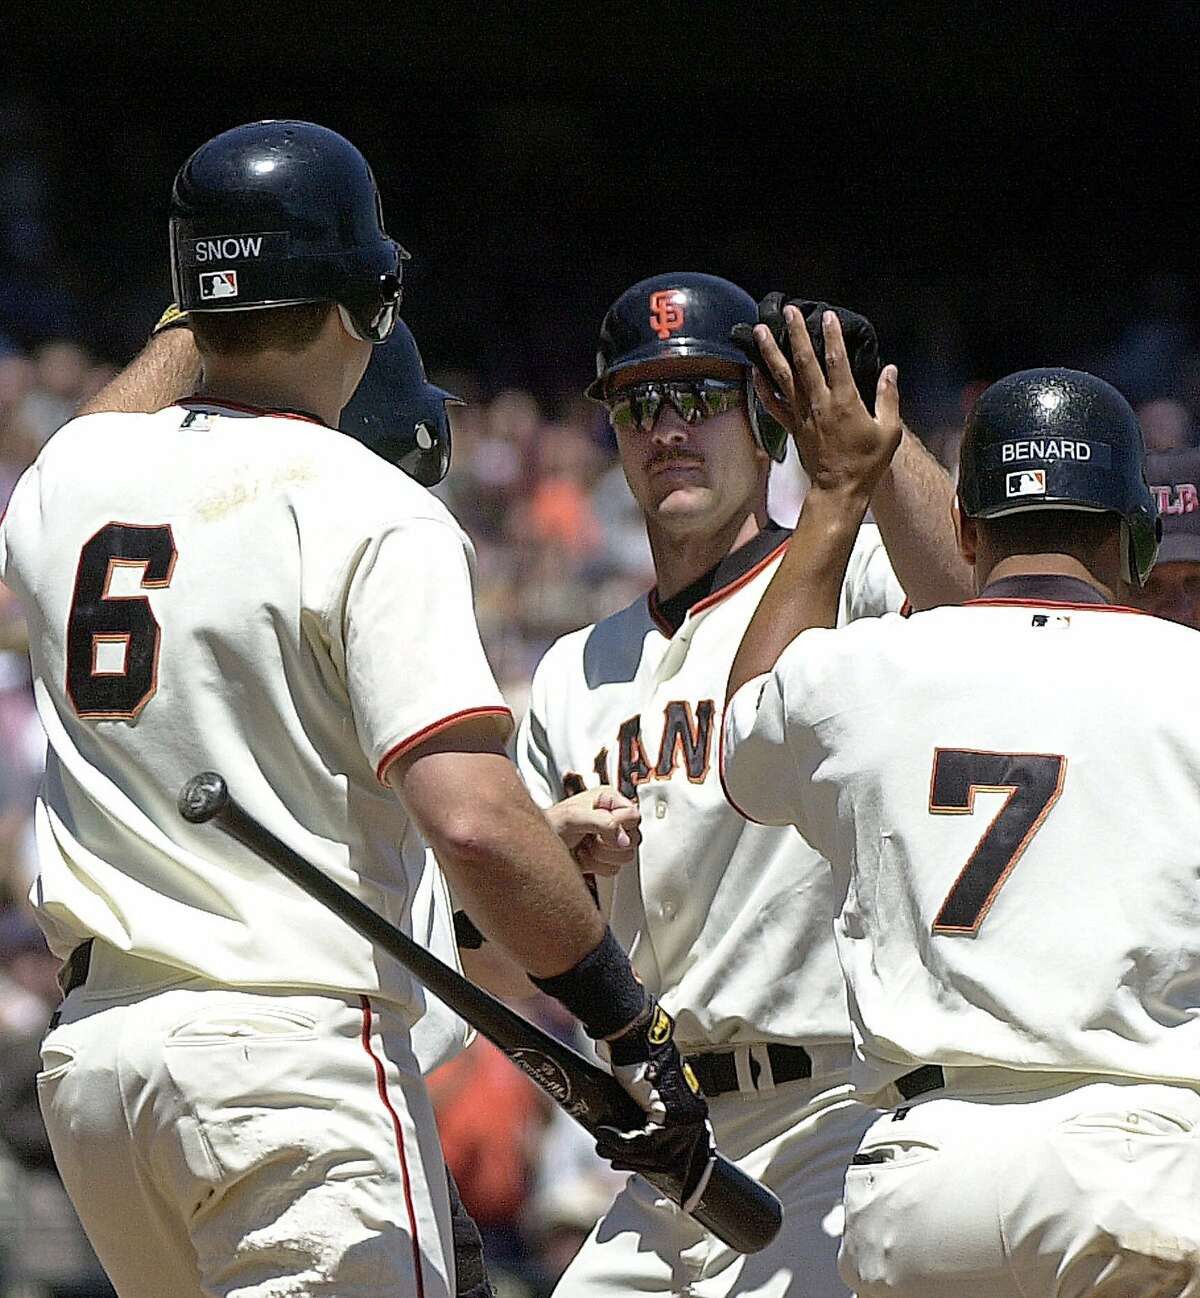 San Francisco Giants' Jeff Kent, center, is welcomed at home plate by teammates J.T. Snow (6) and Marvin Benard (7) after hitting a grandslam off Milwaukee Brewers' Paul Rigdon in the second inning Wednesday, Aug. 9, 2000, at Pacific Bell Park in San Francisco. (AP Photo/Ben Margot)